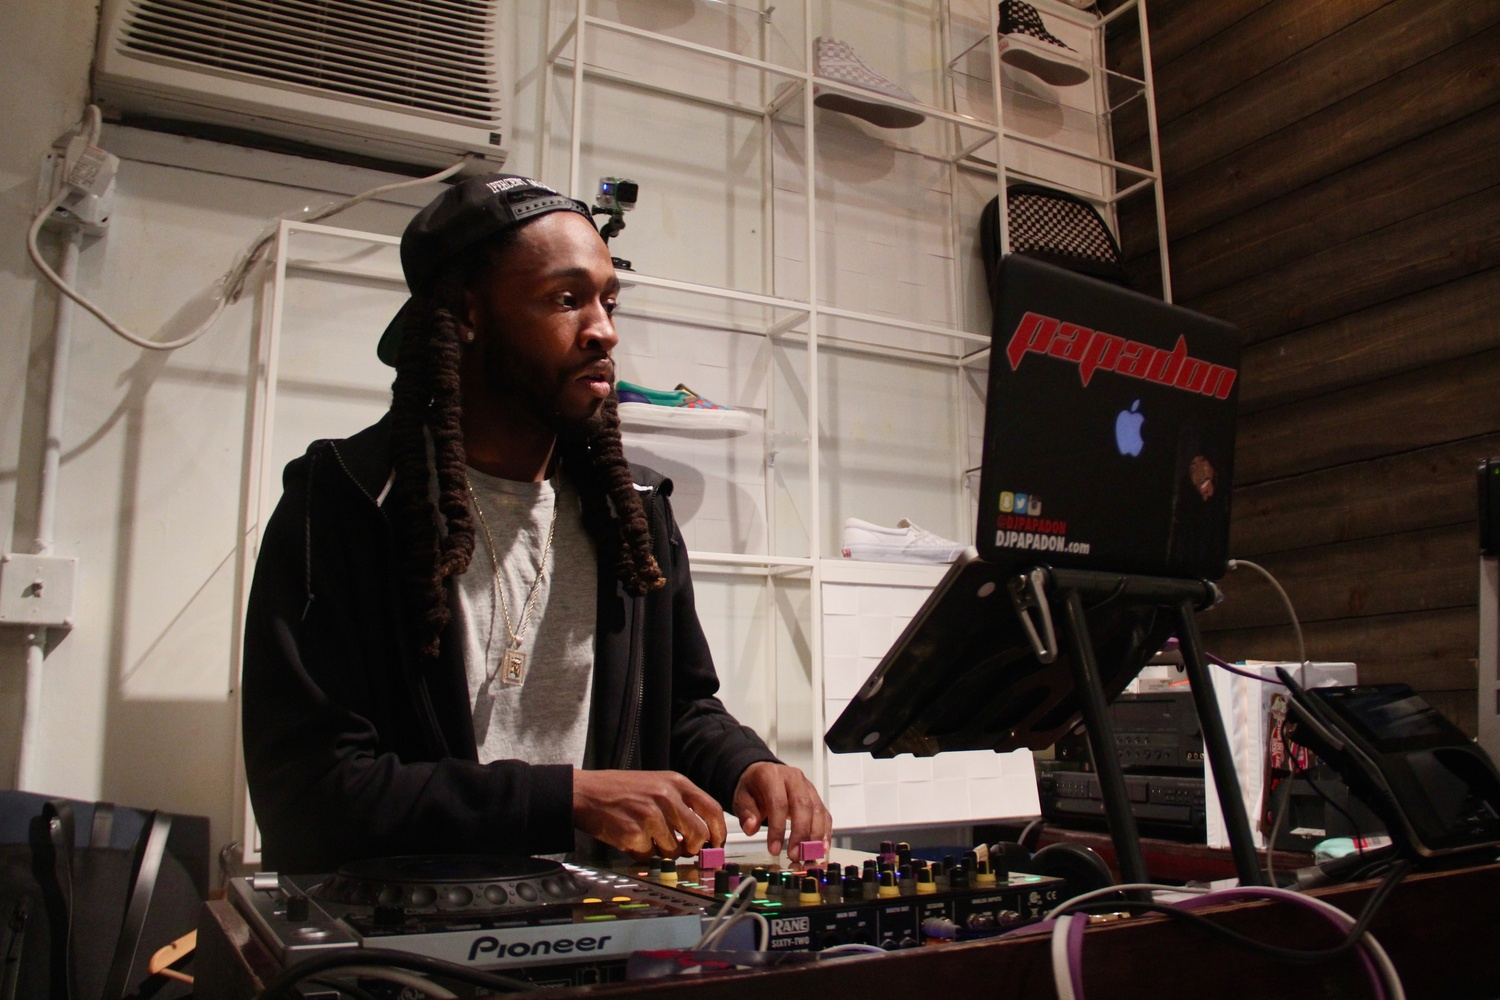 At Bodega, music is a large part of the shopping experience. DJ Papadon controlled the tracks on Monday with a wide mix of music genres. He stood a step up in the back of the store, visible from every corner, in direct eyesight as customers walked in.